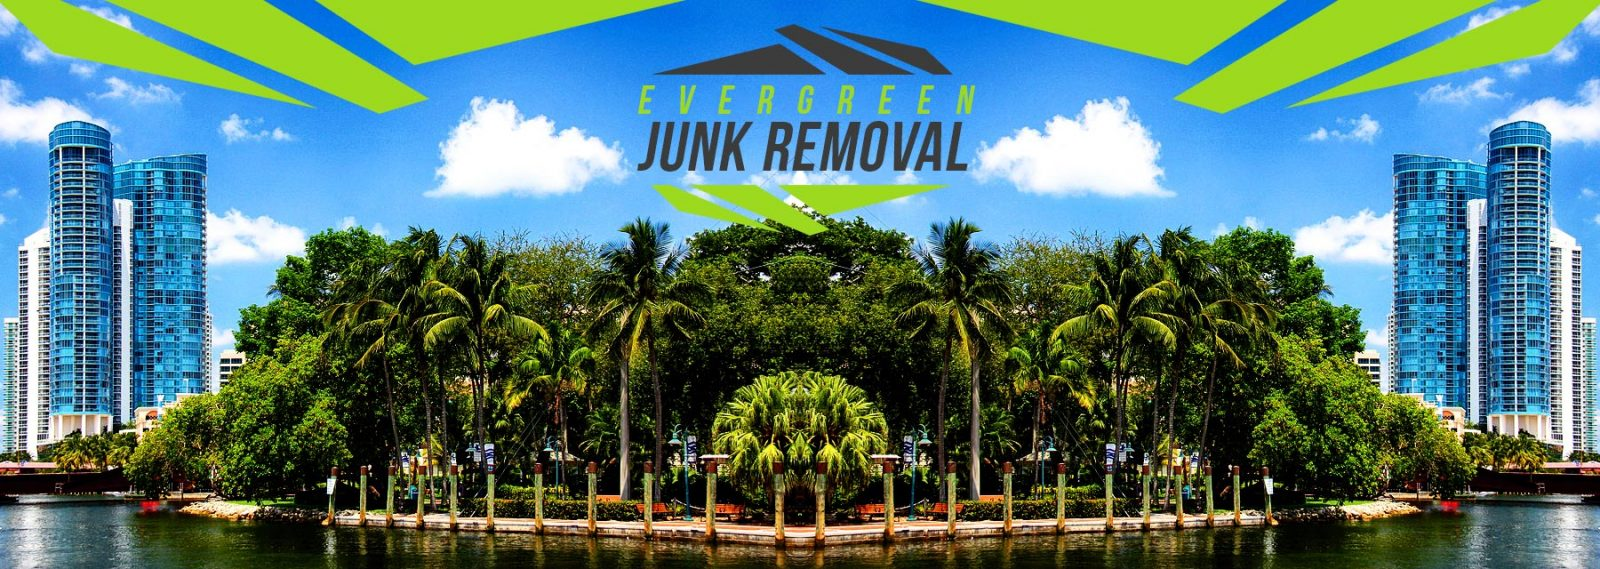 Brooksville Hot Tub Removal Company